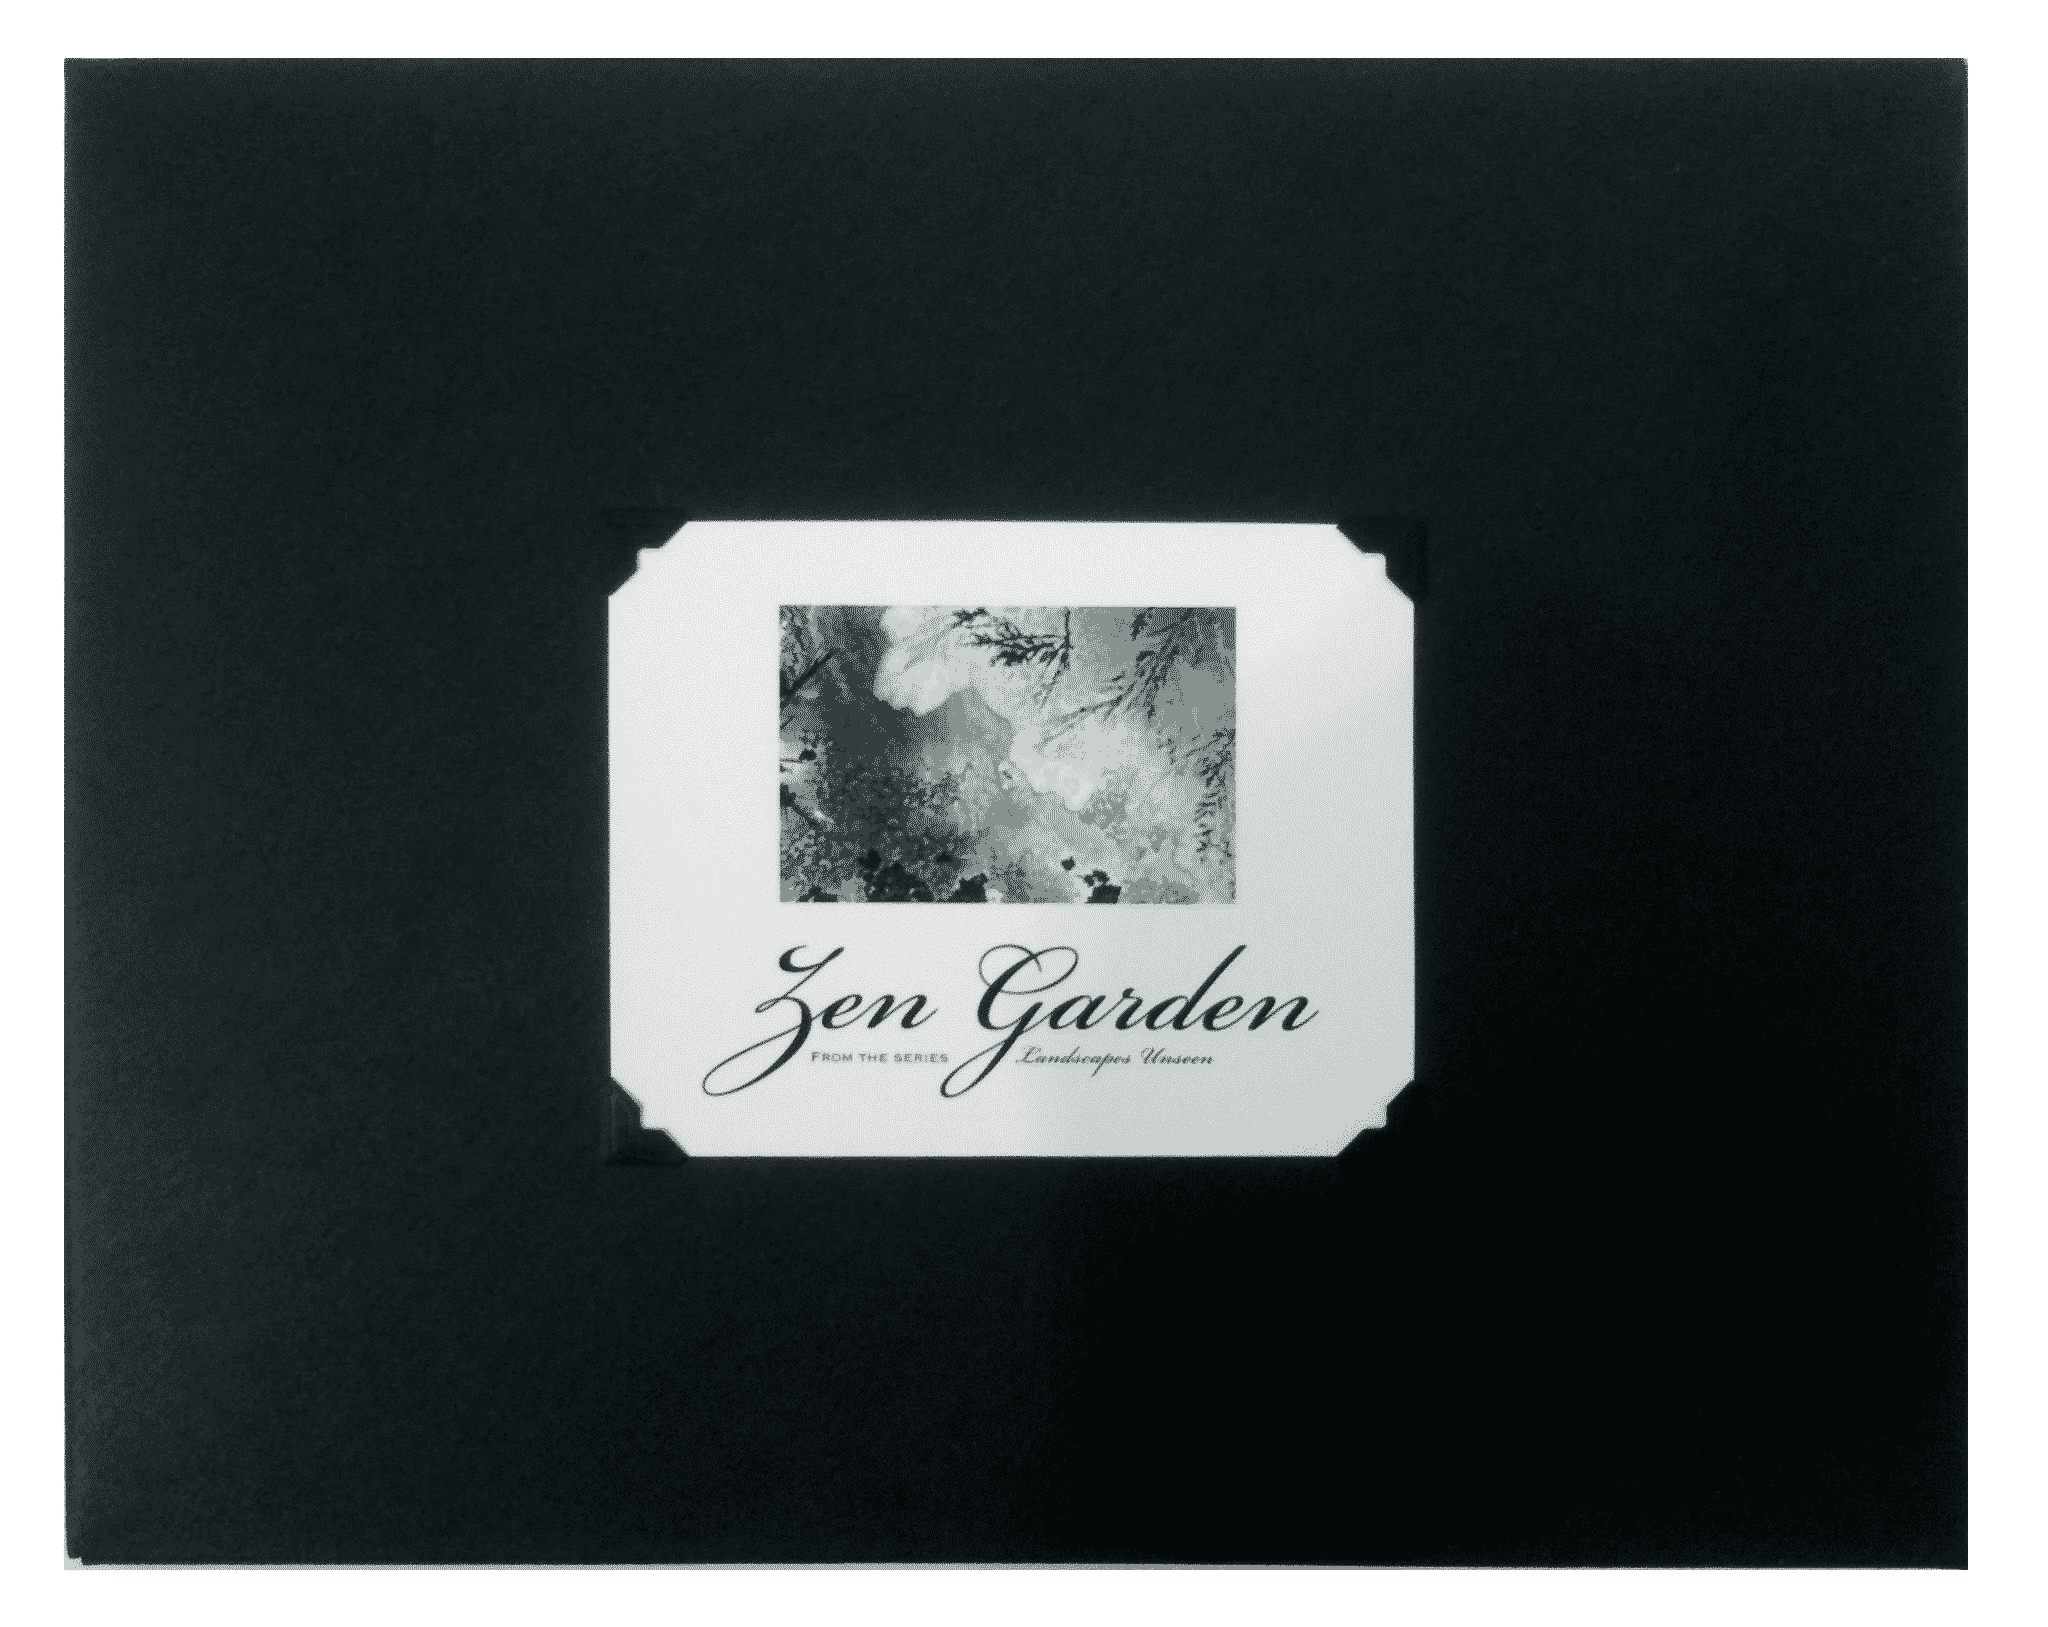 The Zen Garden Folio Contains Ten 8.5 X 11 Inch Photograph. Each Photograph  Is Individually Printed By The Artist On Hahnemuhle Bamboo Paper Using  Archival ...